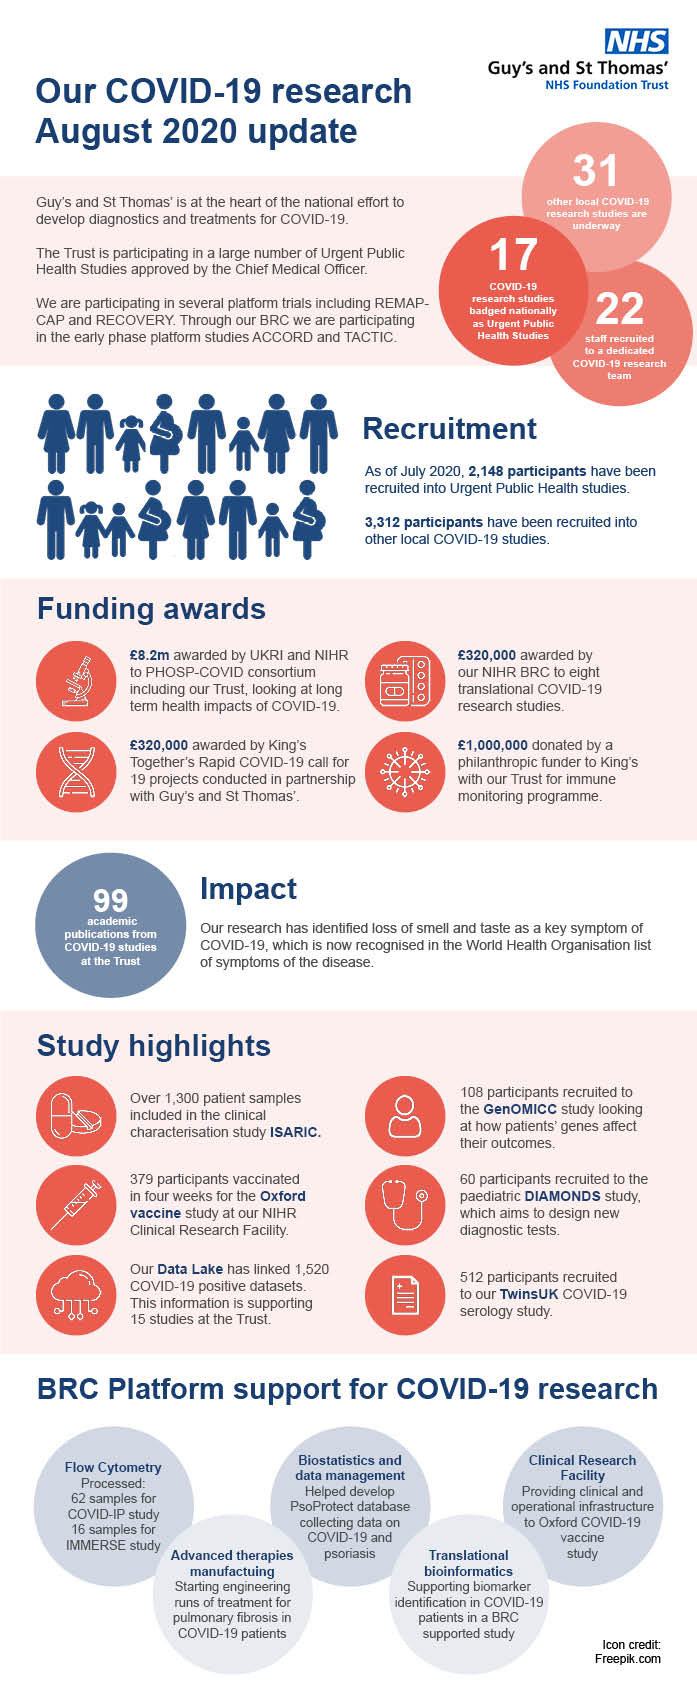 August 2020 infographic showing highlights fro COVID-19 research at Guy's and St Thomas'